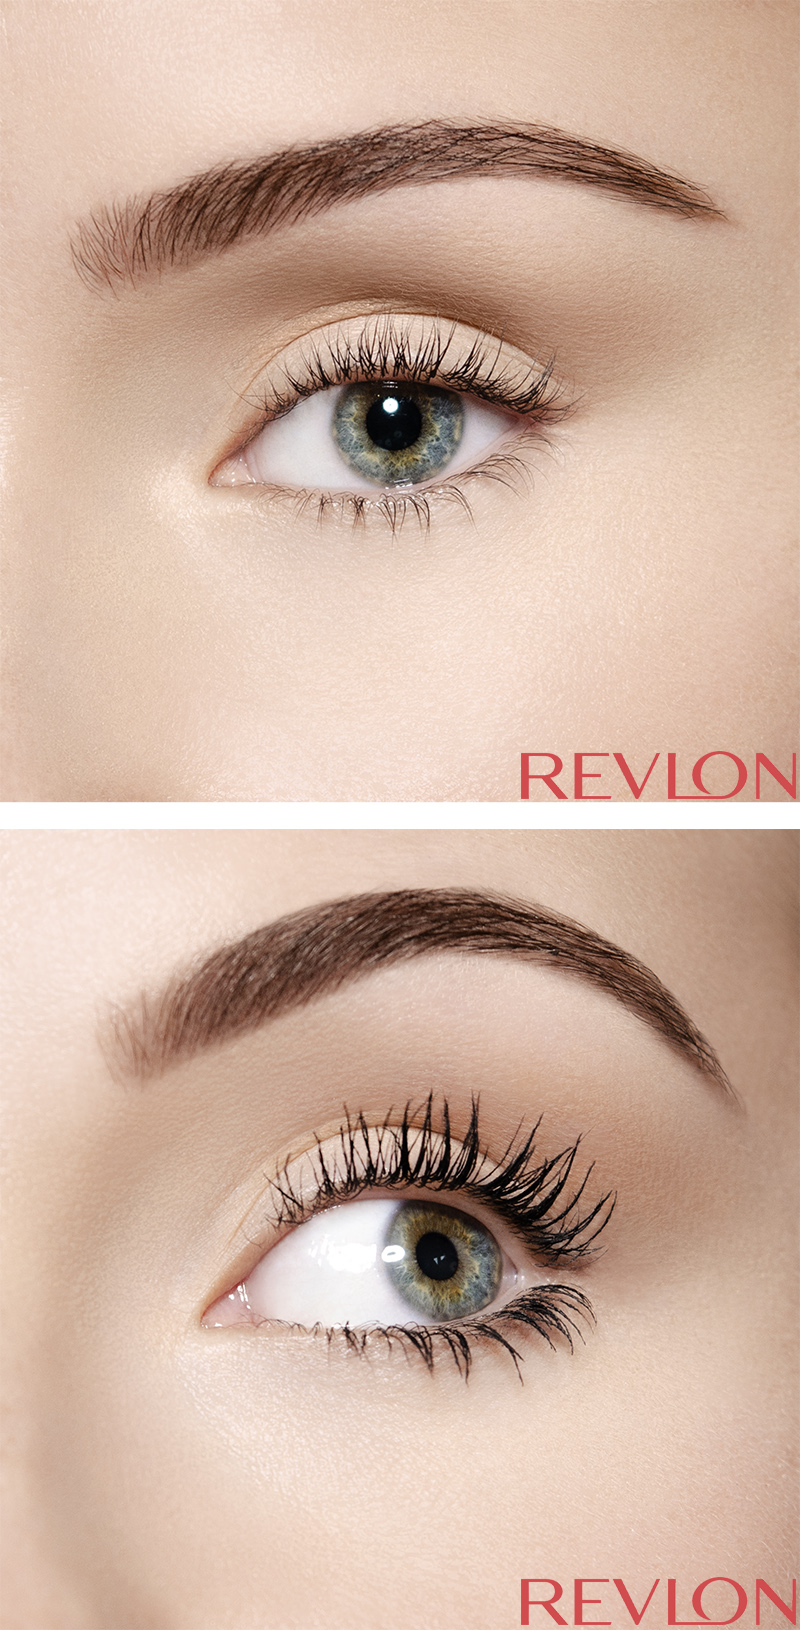 mateusz sitek eye close up london beauty photographer revlon.jpg